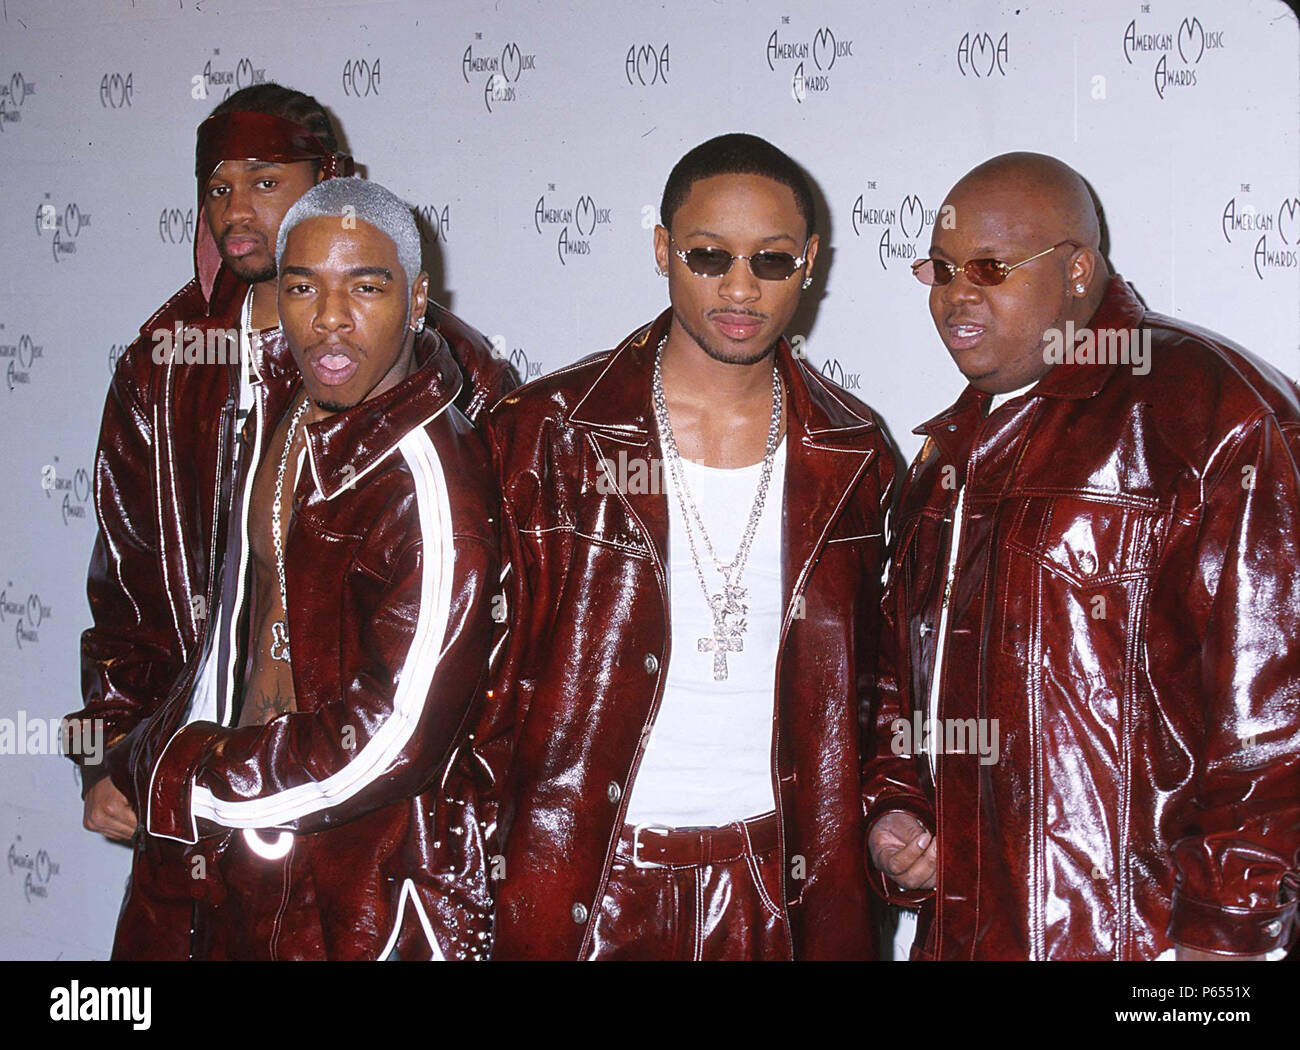 -            Dru Hill .jpgDru Hill   Event in Hollywood Life - California, Red Carpet Event, USA, Film Industry, Celebrities, Photography, Bestof, Arts Culture and Entertainment, Topix Celebrities fashion, Best of, Hollywood Life, Event in Hollywood Life - California, Red Carpet and backstage, ,Arts Culture and Entertainment, Photography,    inquiry tsuni@Gamma-USA.com ,  Music celebrities, Musician, Music Group, 2000 to 2009 Stock Photo